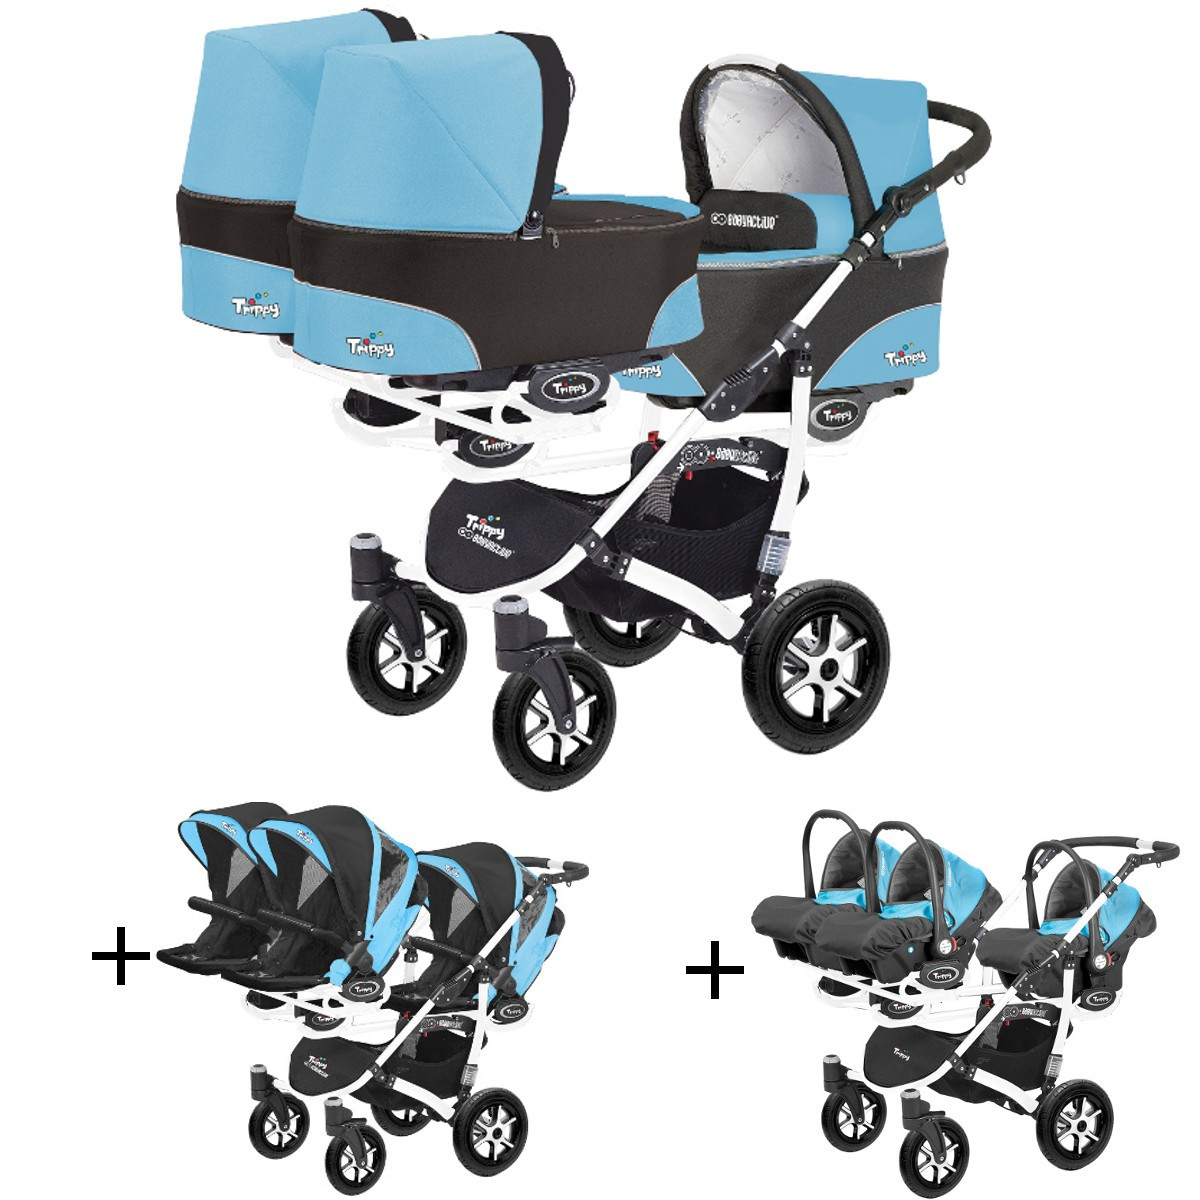 trippy drillings kombi kinderwagen 3in1 komplettset mit babyschalen. Black Bedroom Furniture Sets. Home Design Ideas